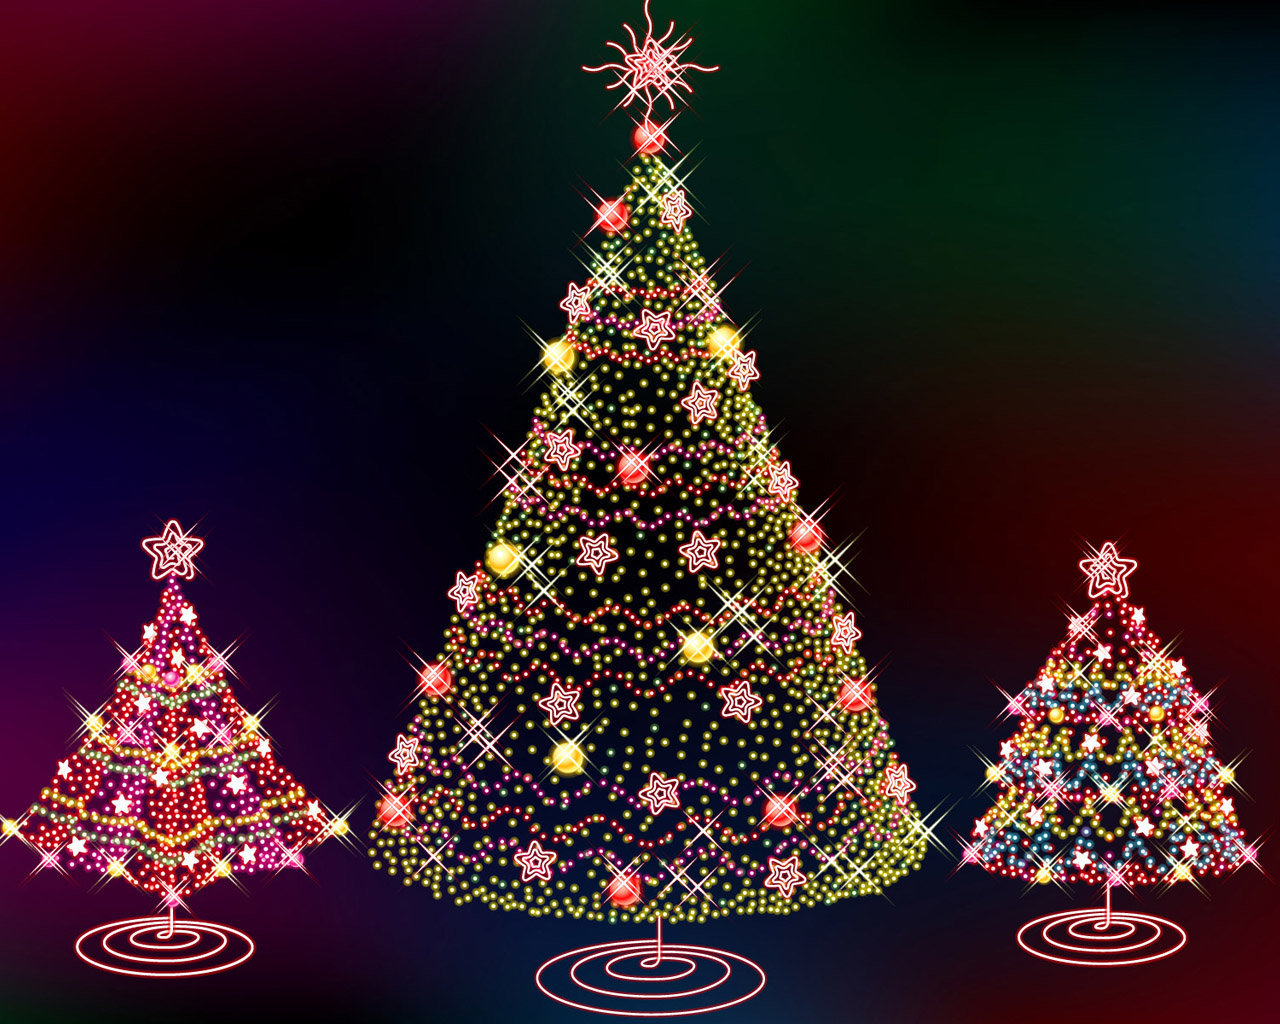 best christmas tree background id:436032 for high resolution hd